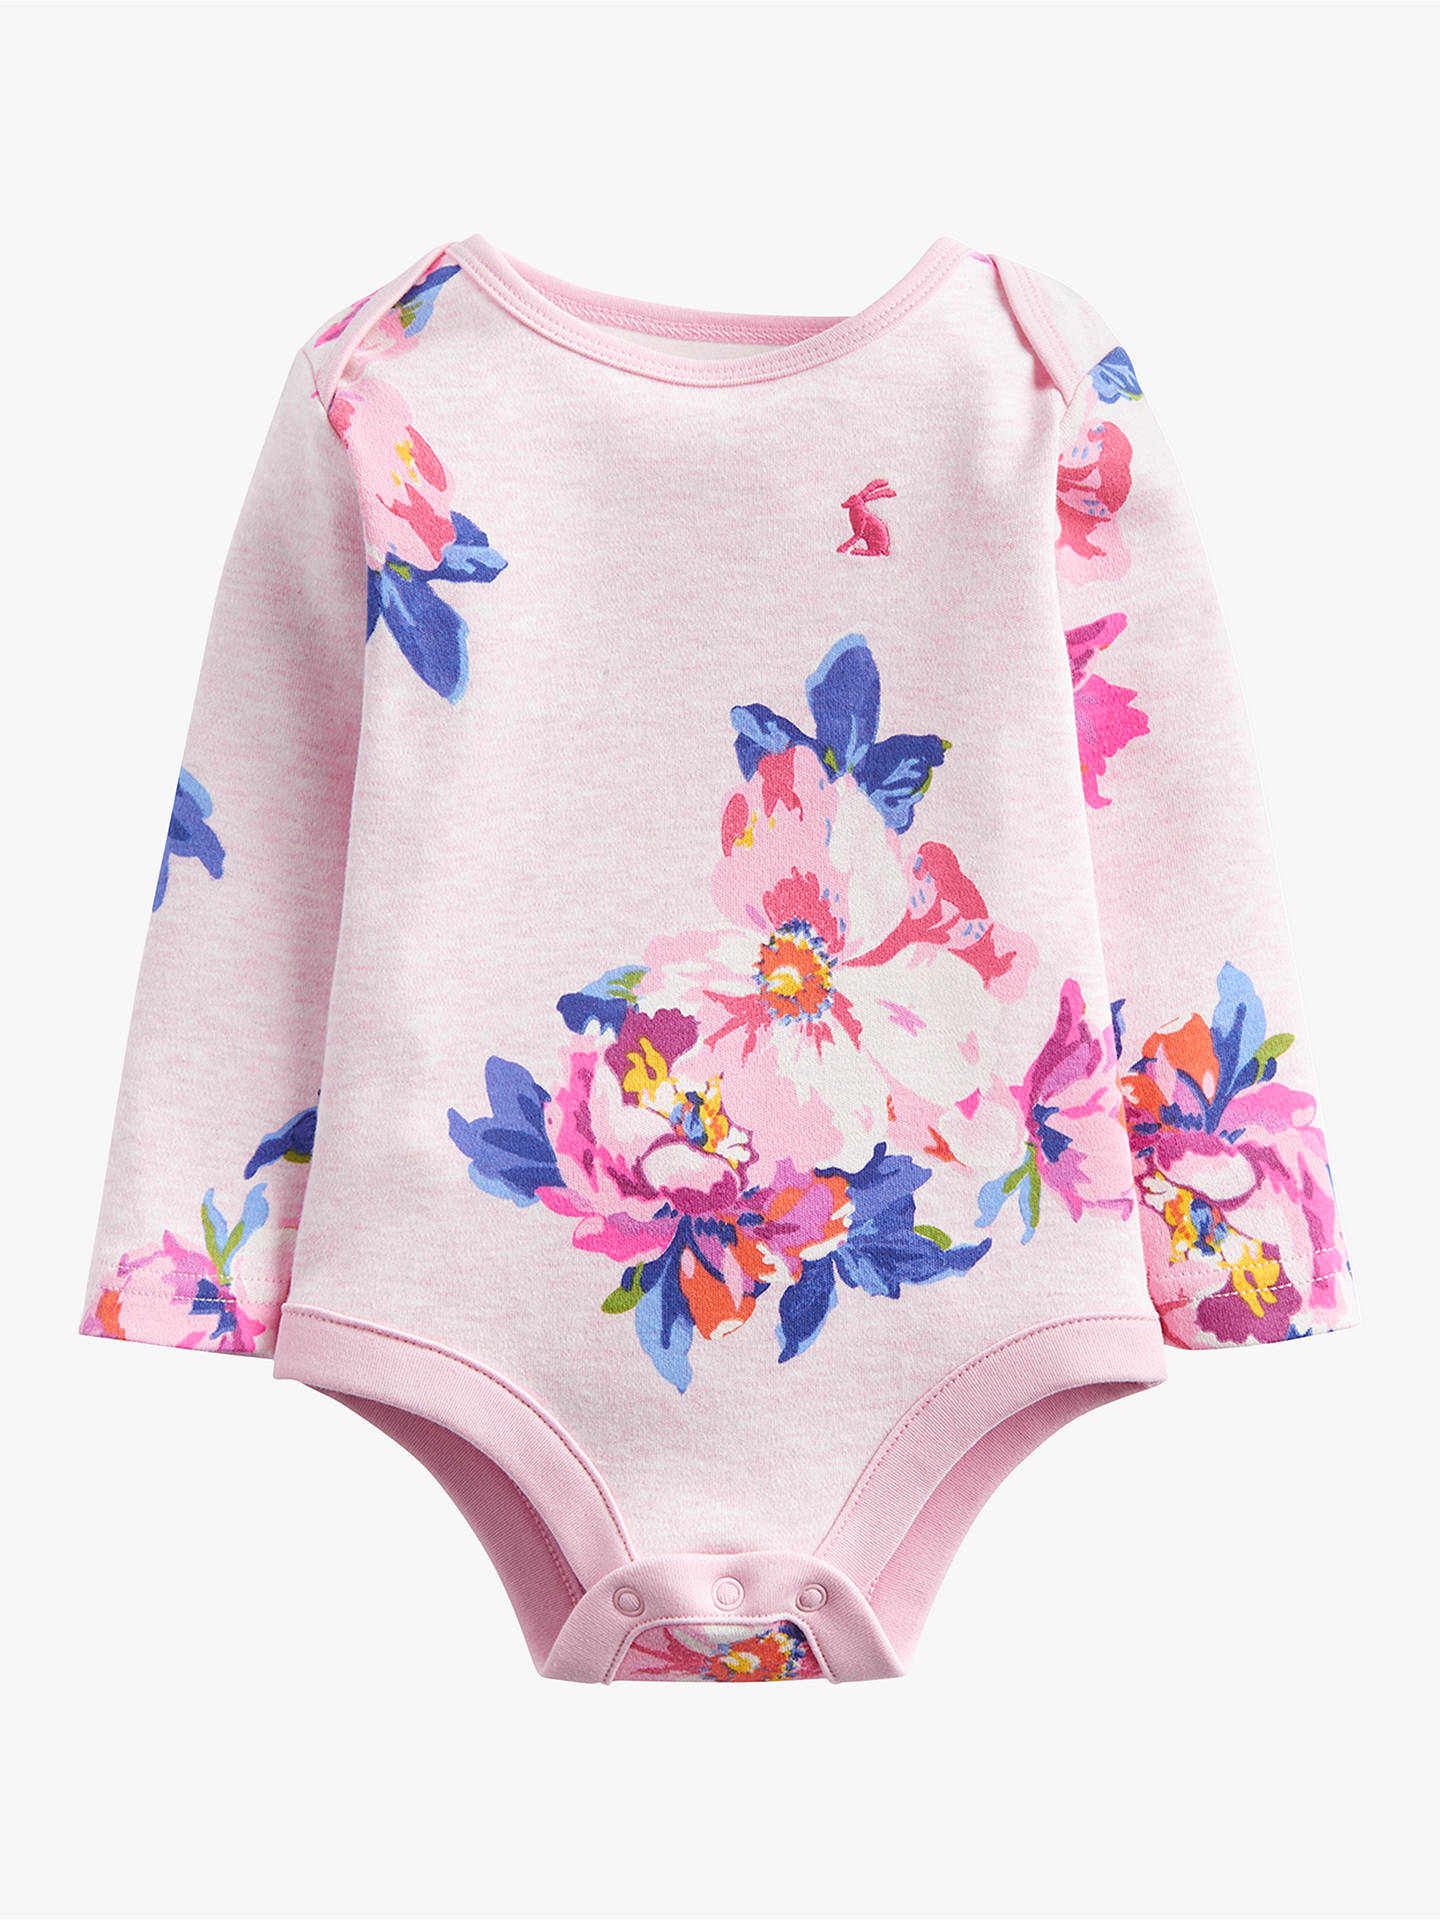 Buy Baby Joule Snazzy Floral Bodysuit, Pink, 0-3 months Online at johnlewis.com